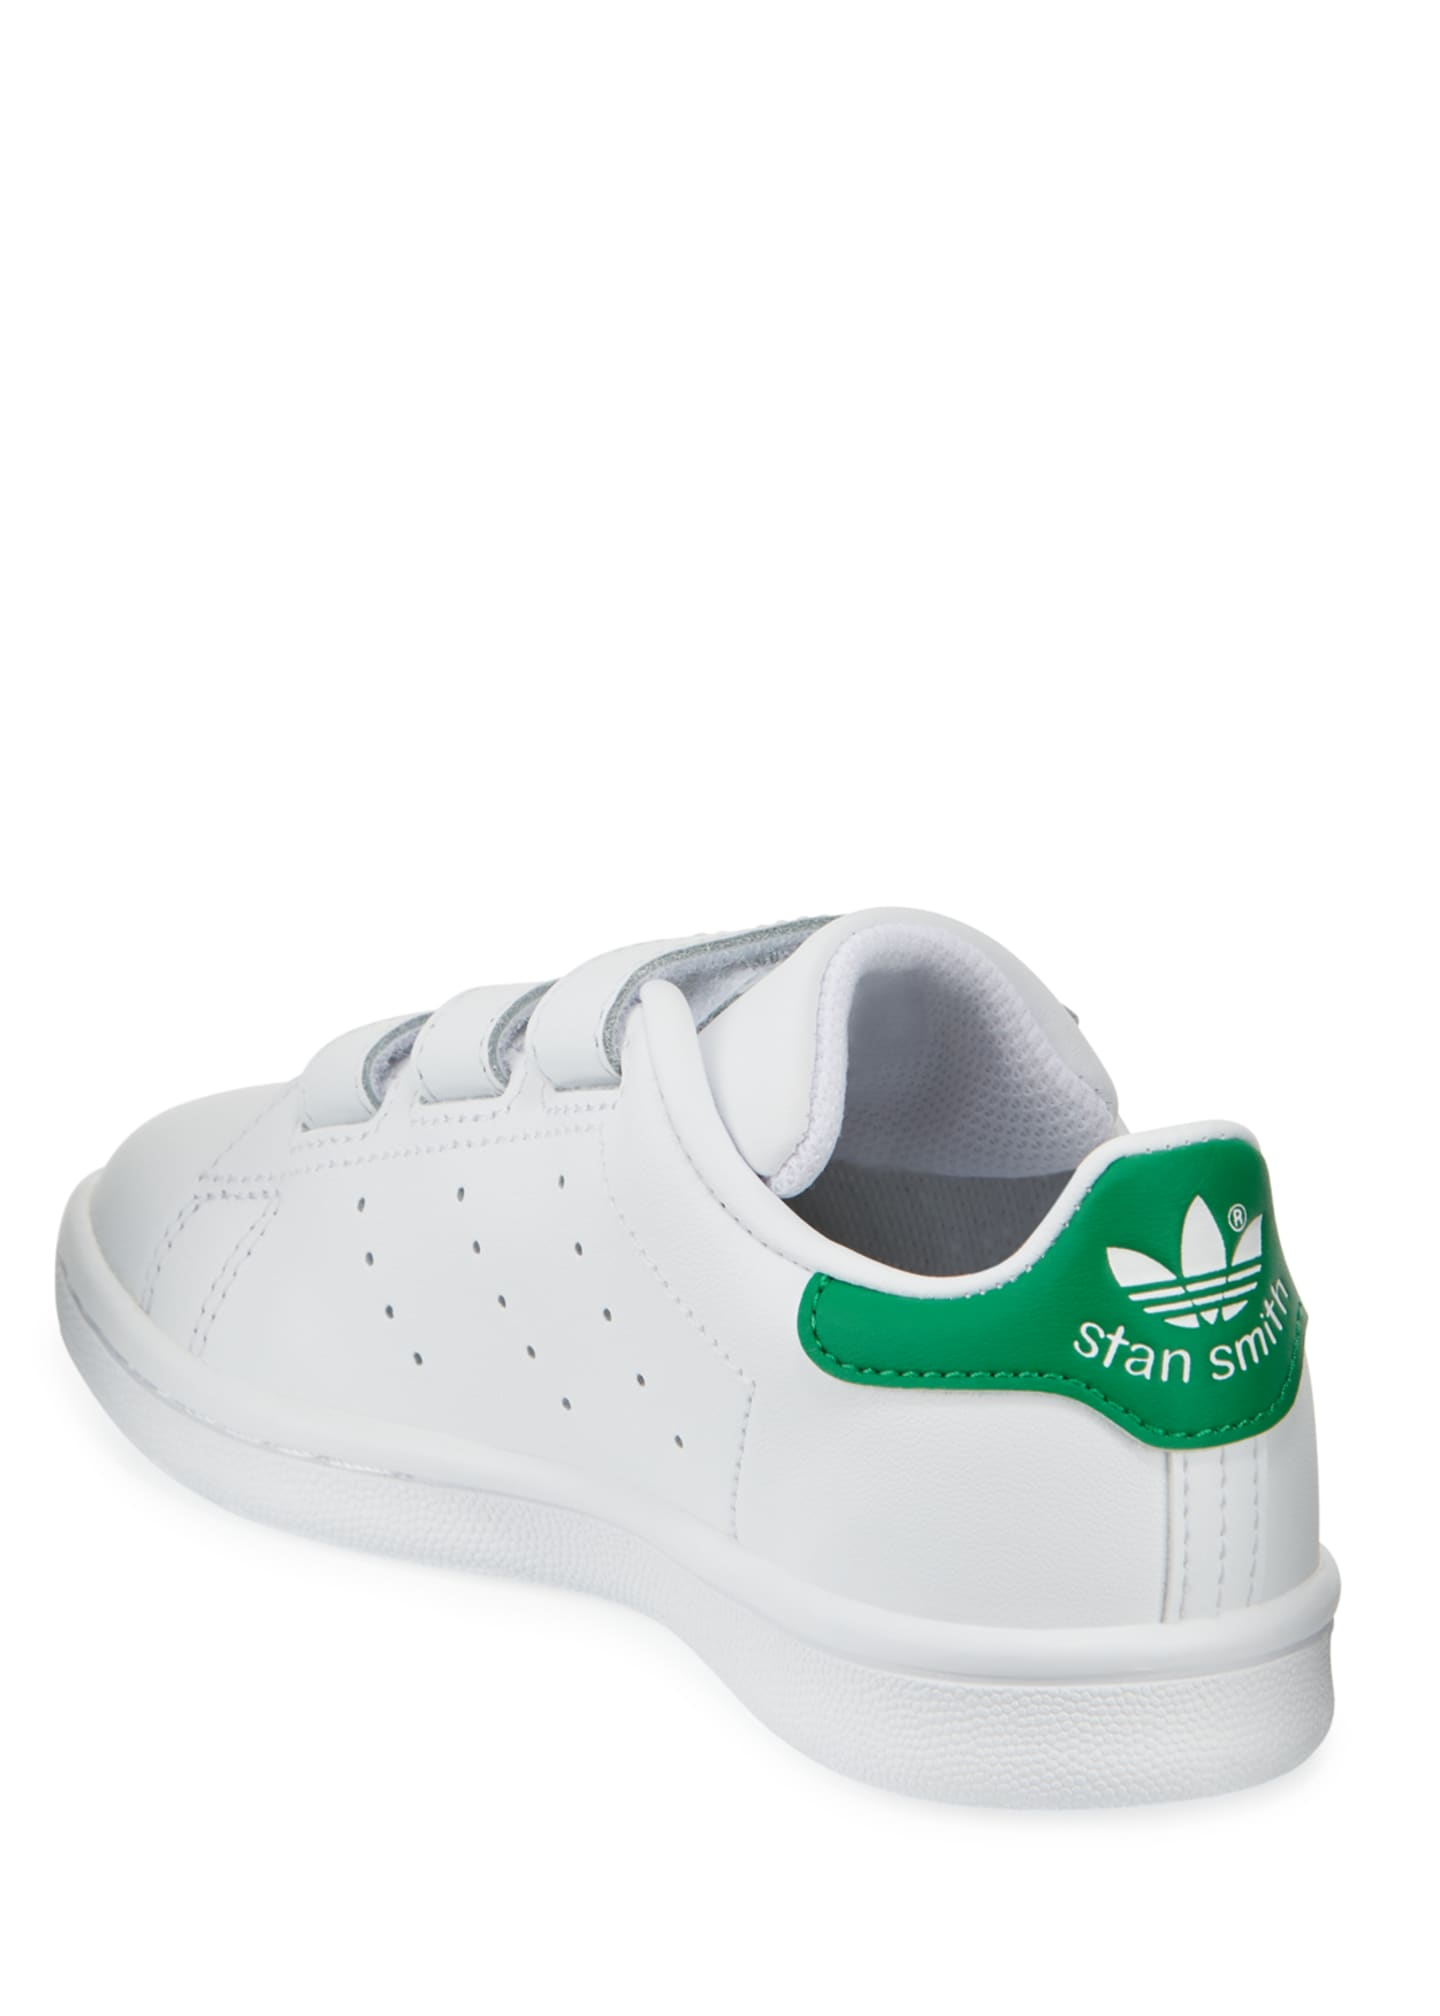 Image 4 of 4: Stan Smith Sneakers, Toddlers/Kids